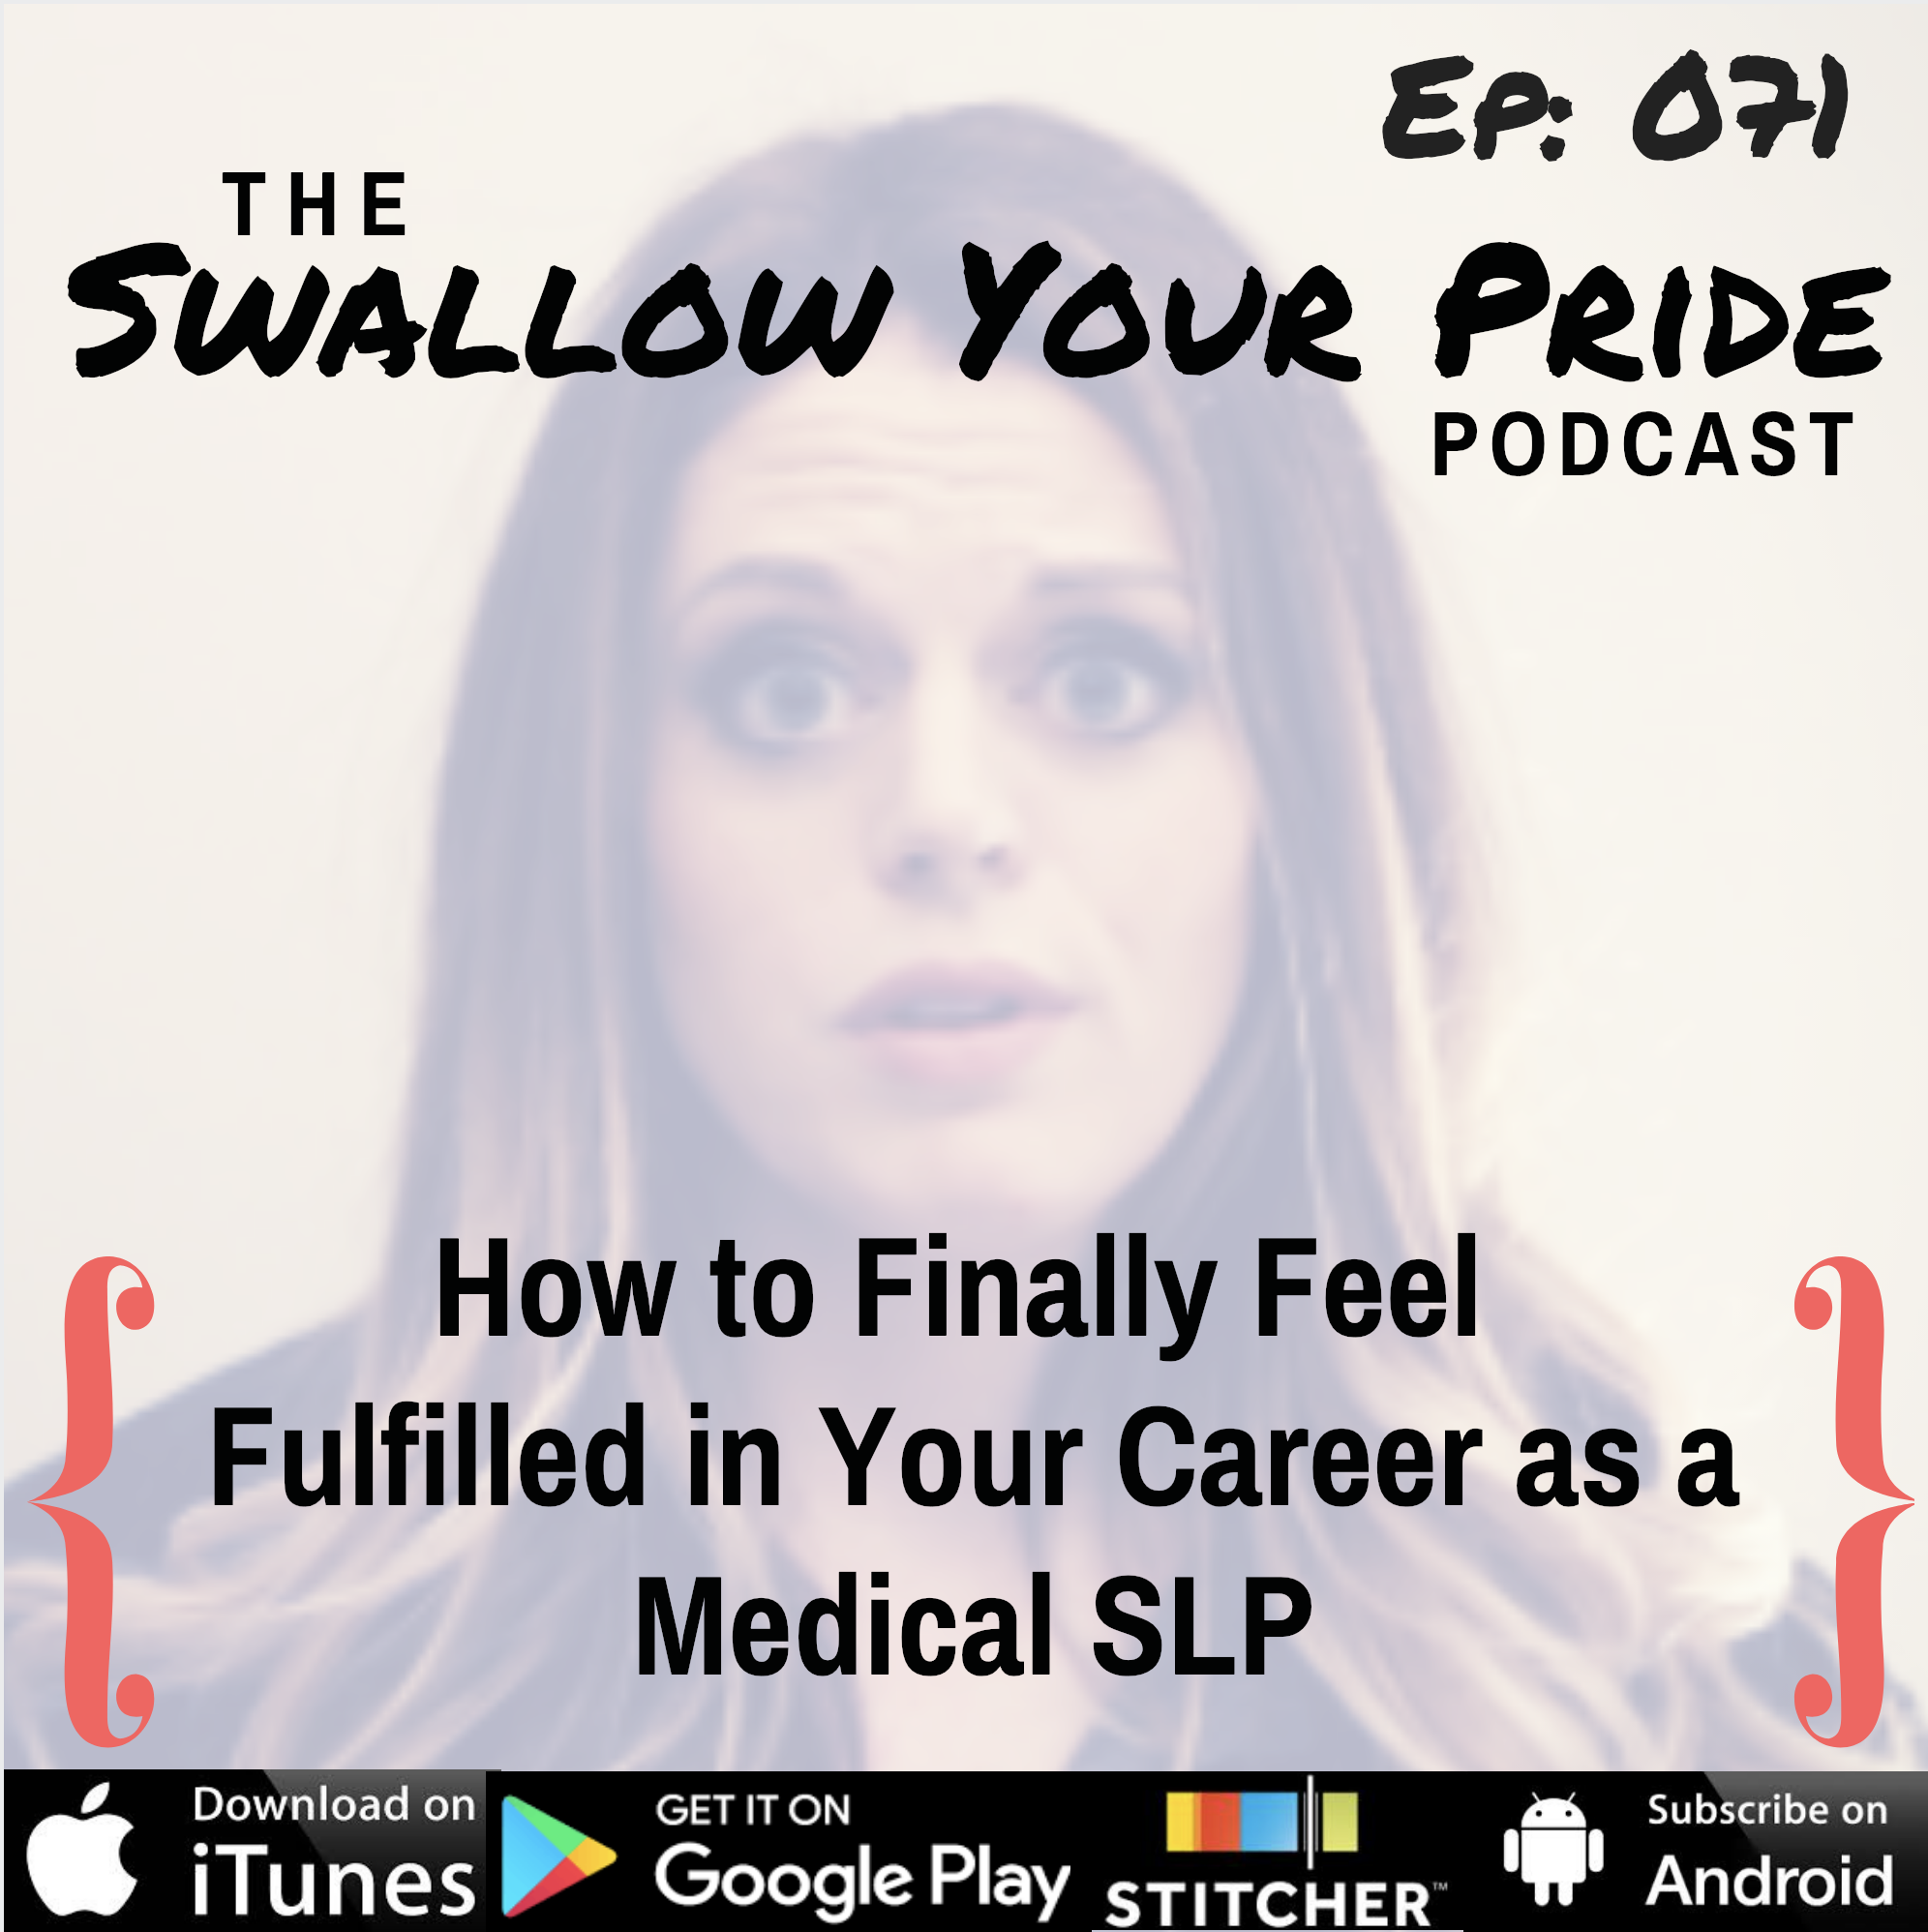 071 – How to Finally Feel Fulfilled in Your Career as a Medical SLP